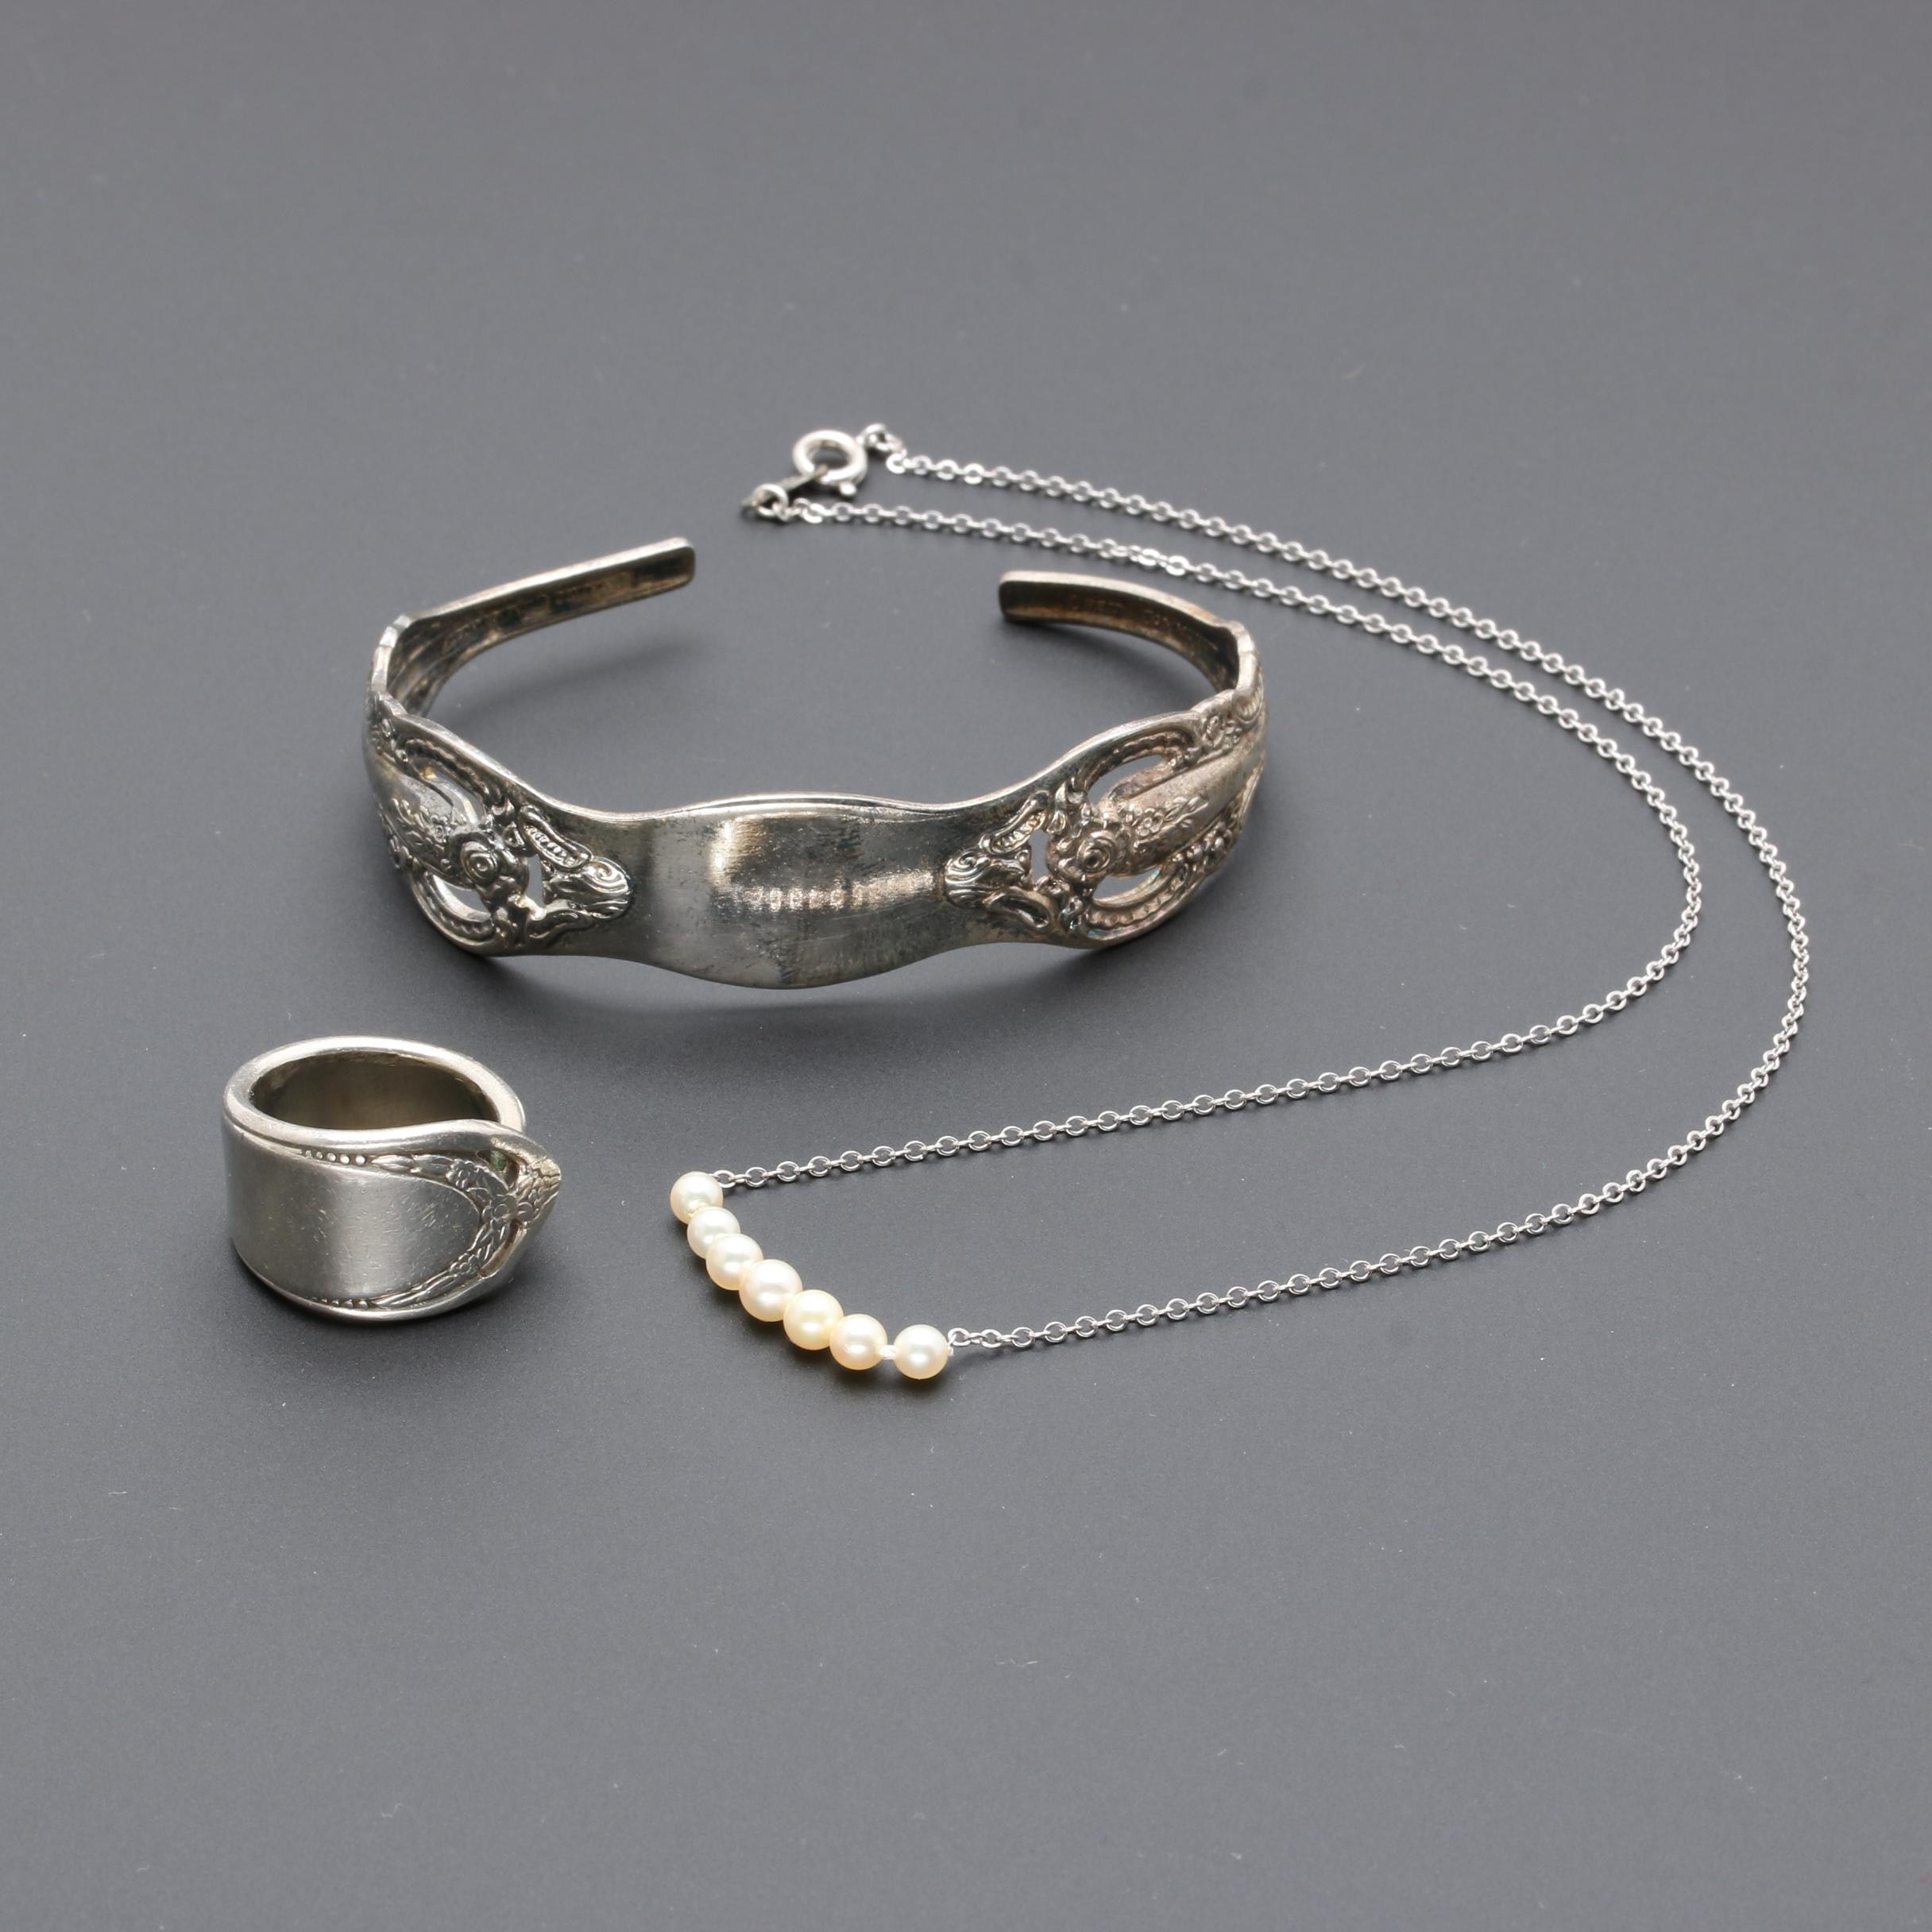 Jewelry Collection Including 999 Silver, Sterling Silver, and Cultured Pearls